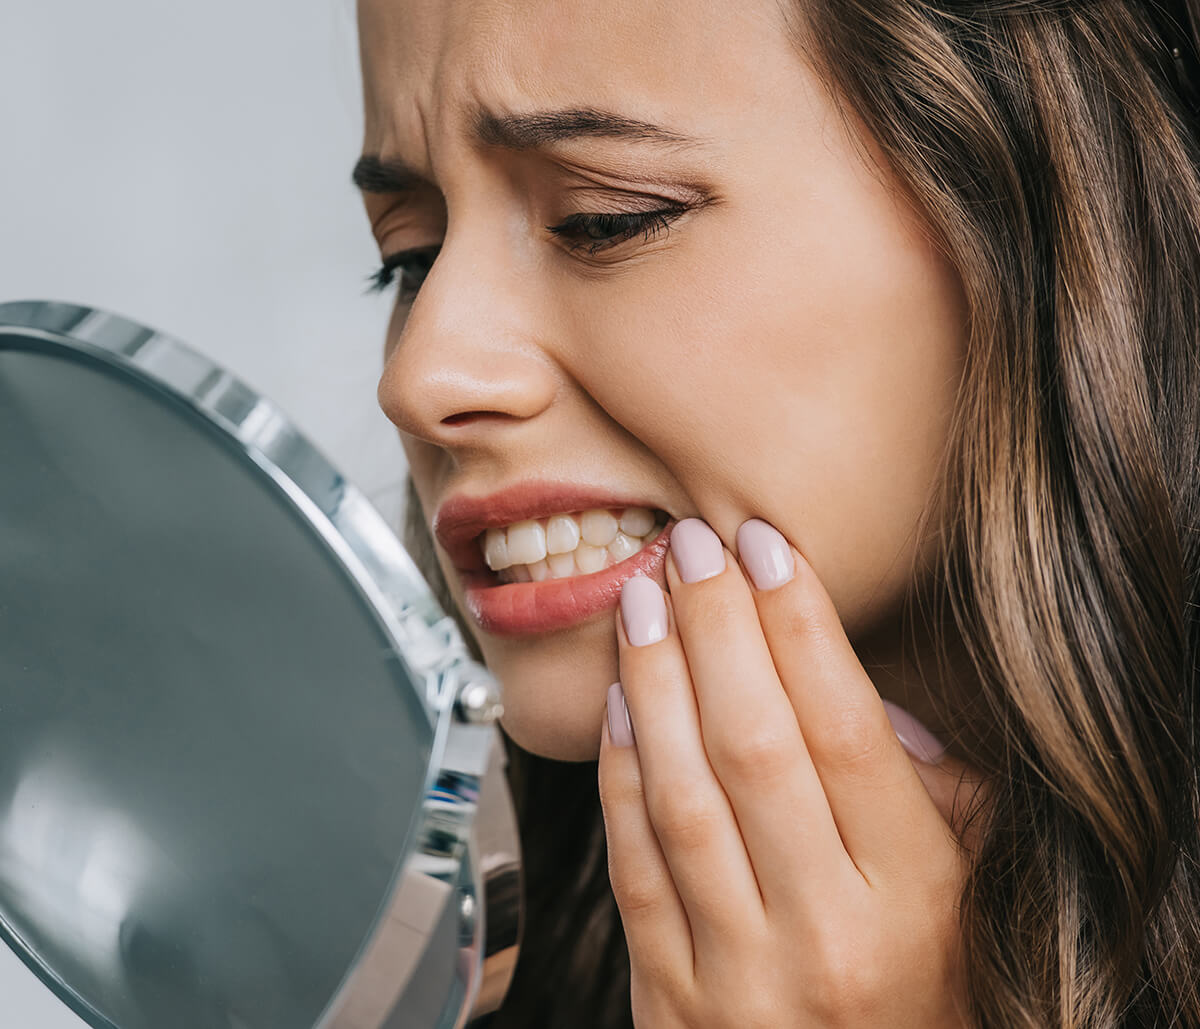 Insights About the 16th Third Molar Tooth for Fort Lauderdale, FL, Area Patients